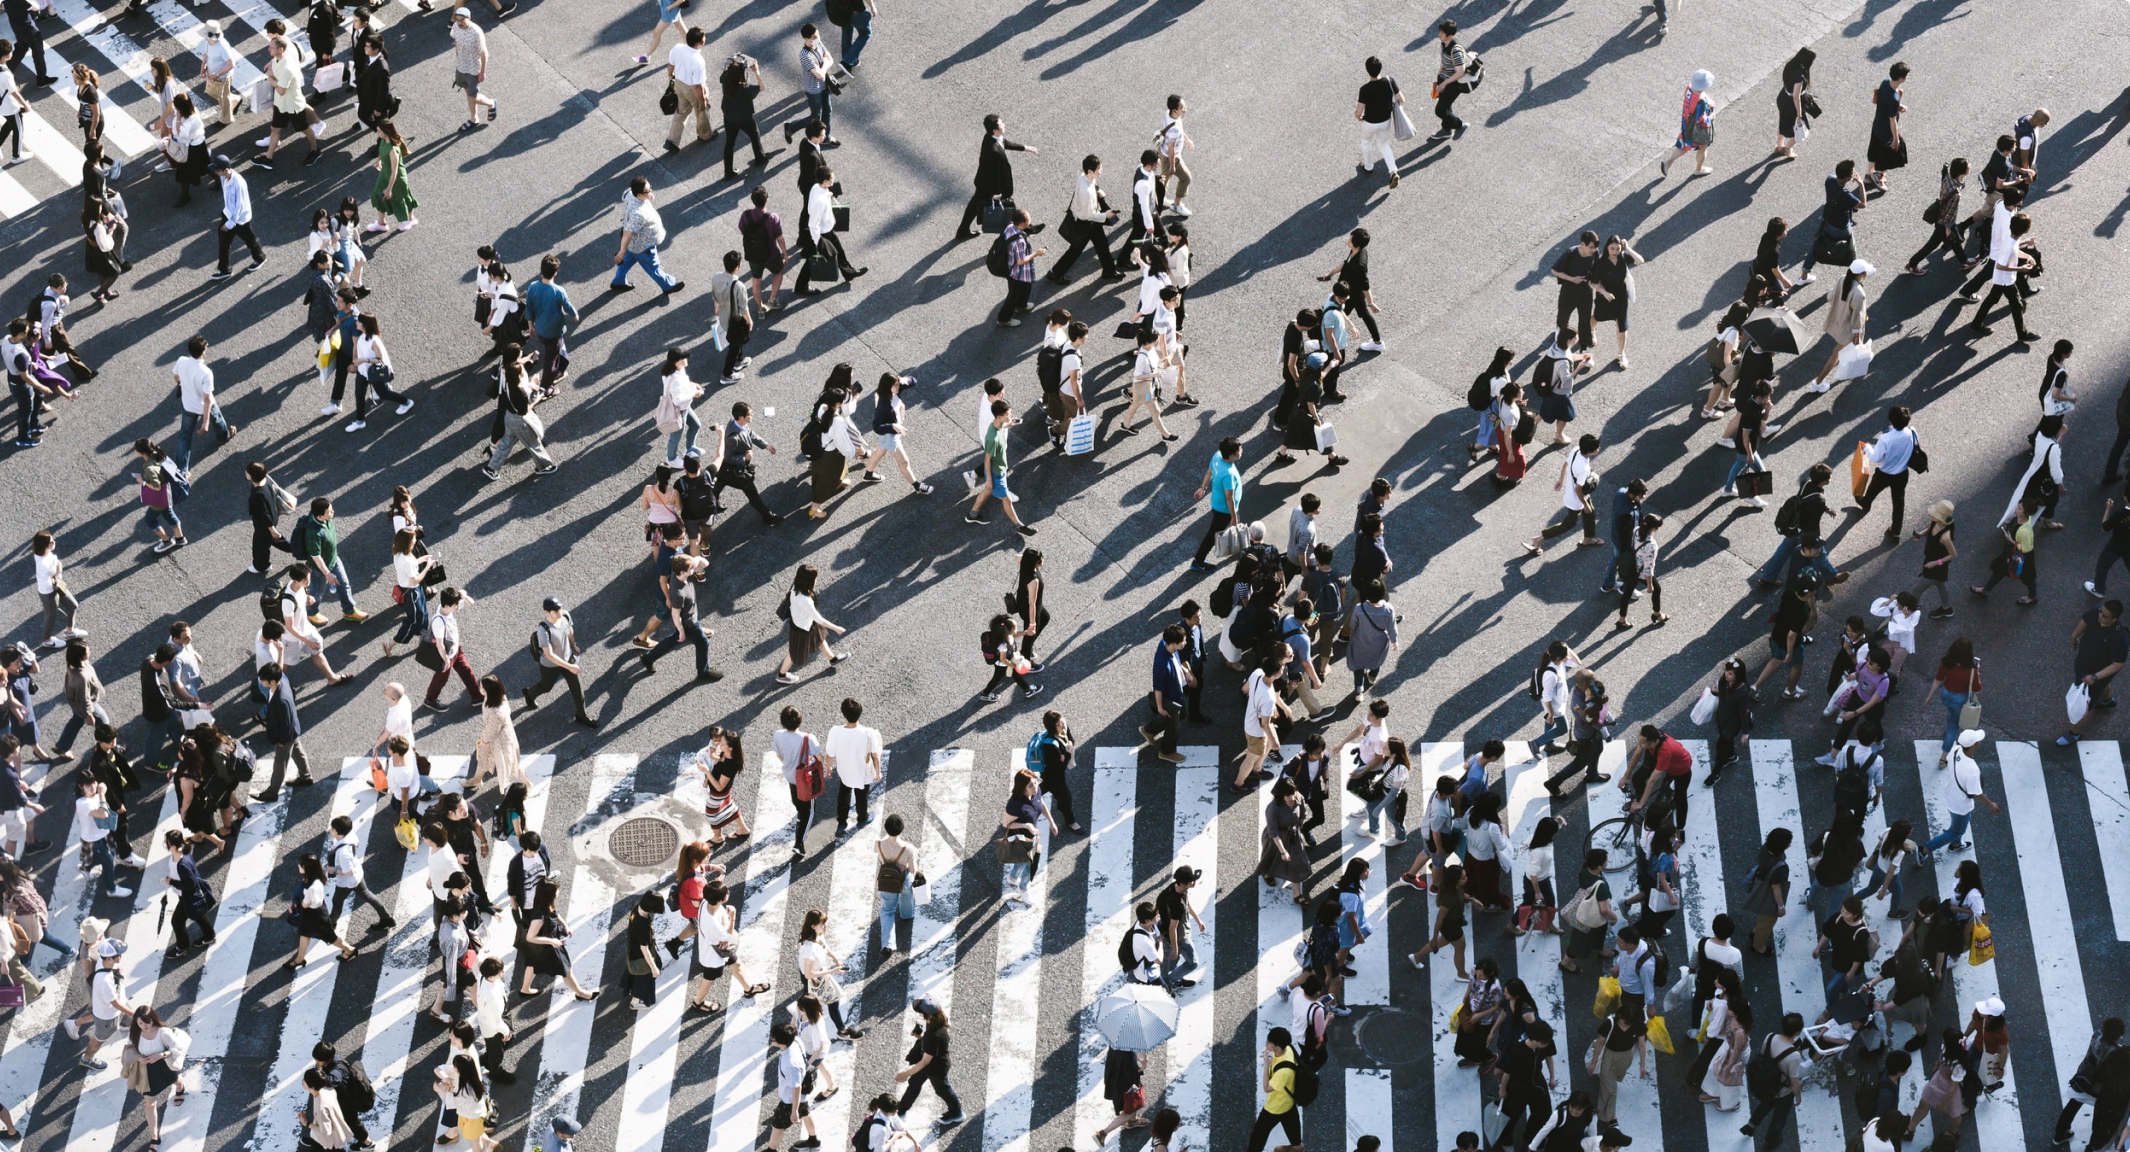 A top down image of a large crowd crossing a street in many directions.